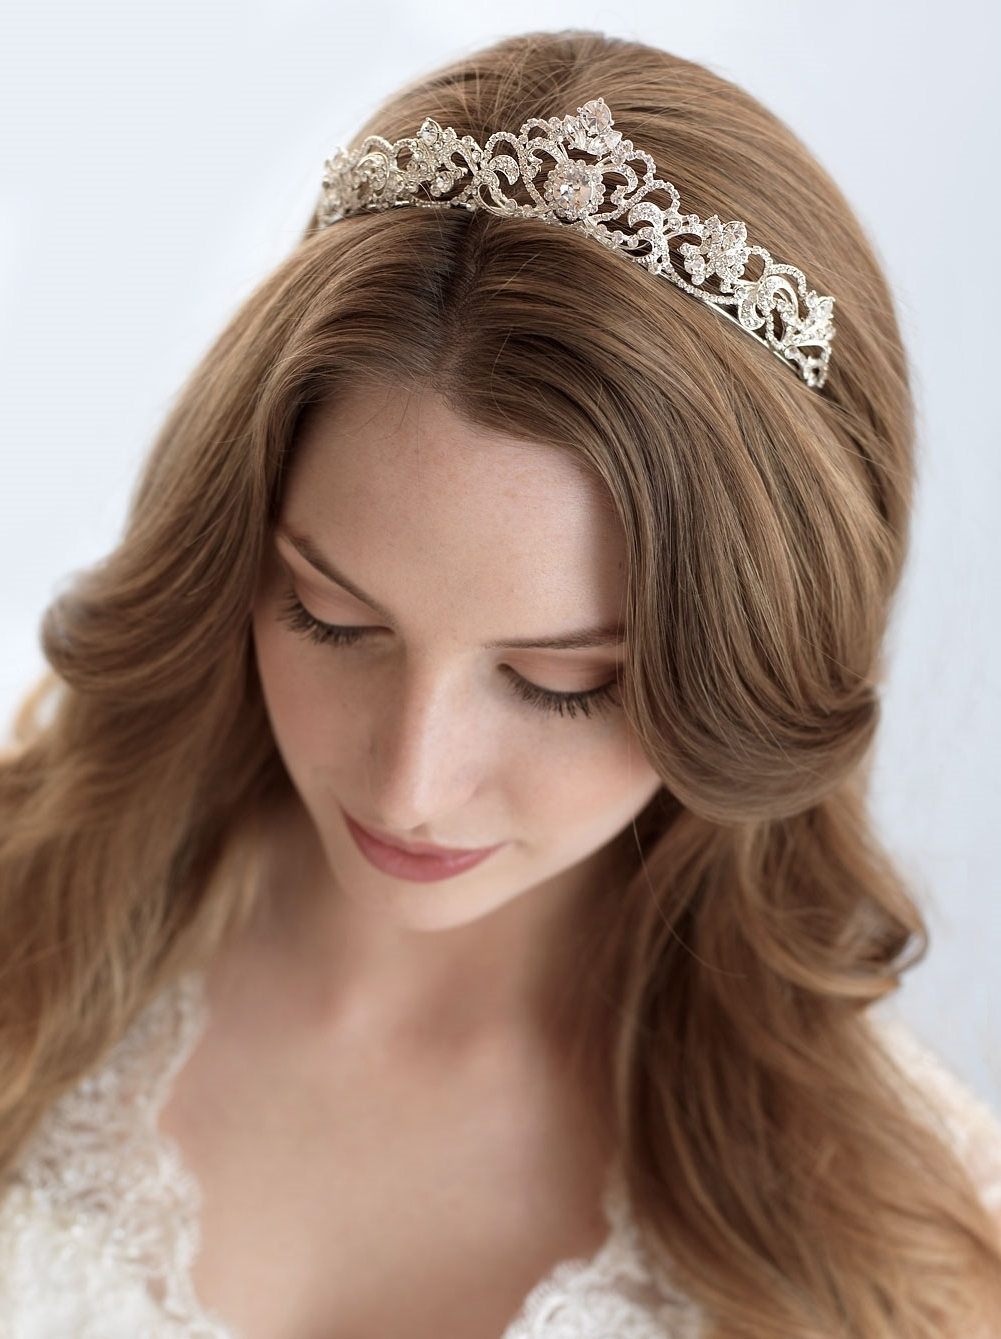 Bridal Tiara Hair Down – Tips In Choosing Bridal Tiaras Based N Face With Regard To Recent Wedding Hairstyles Down With Tiara (View 6 of 15)